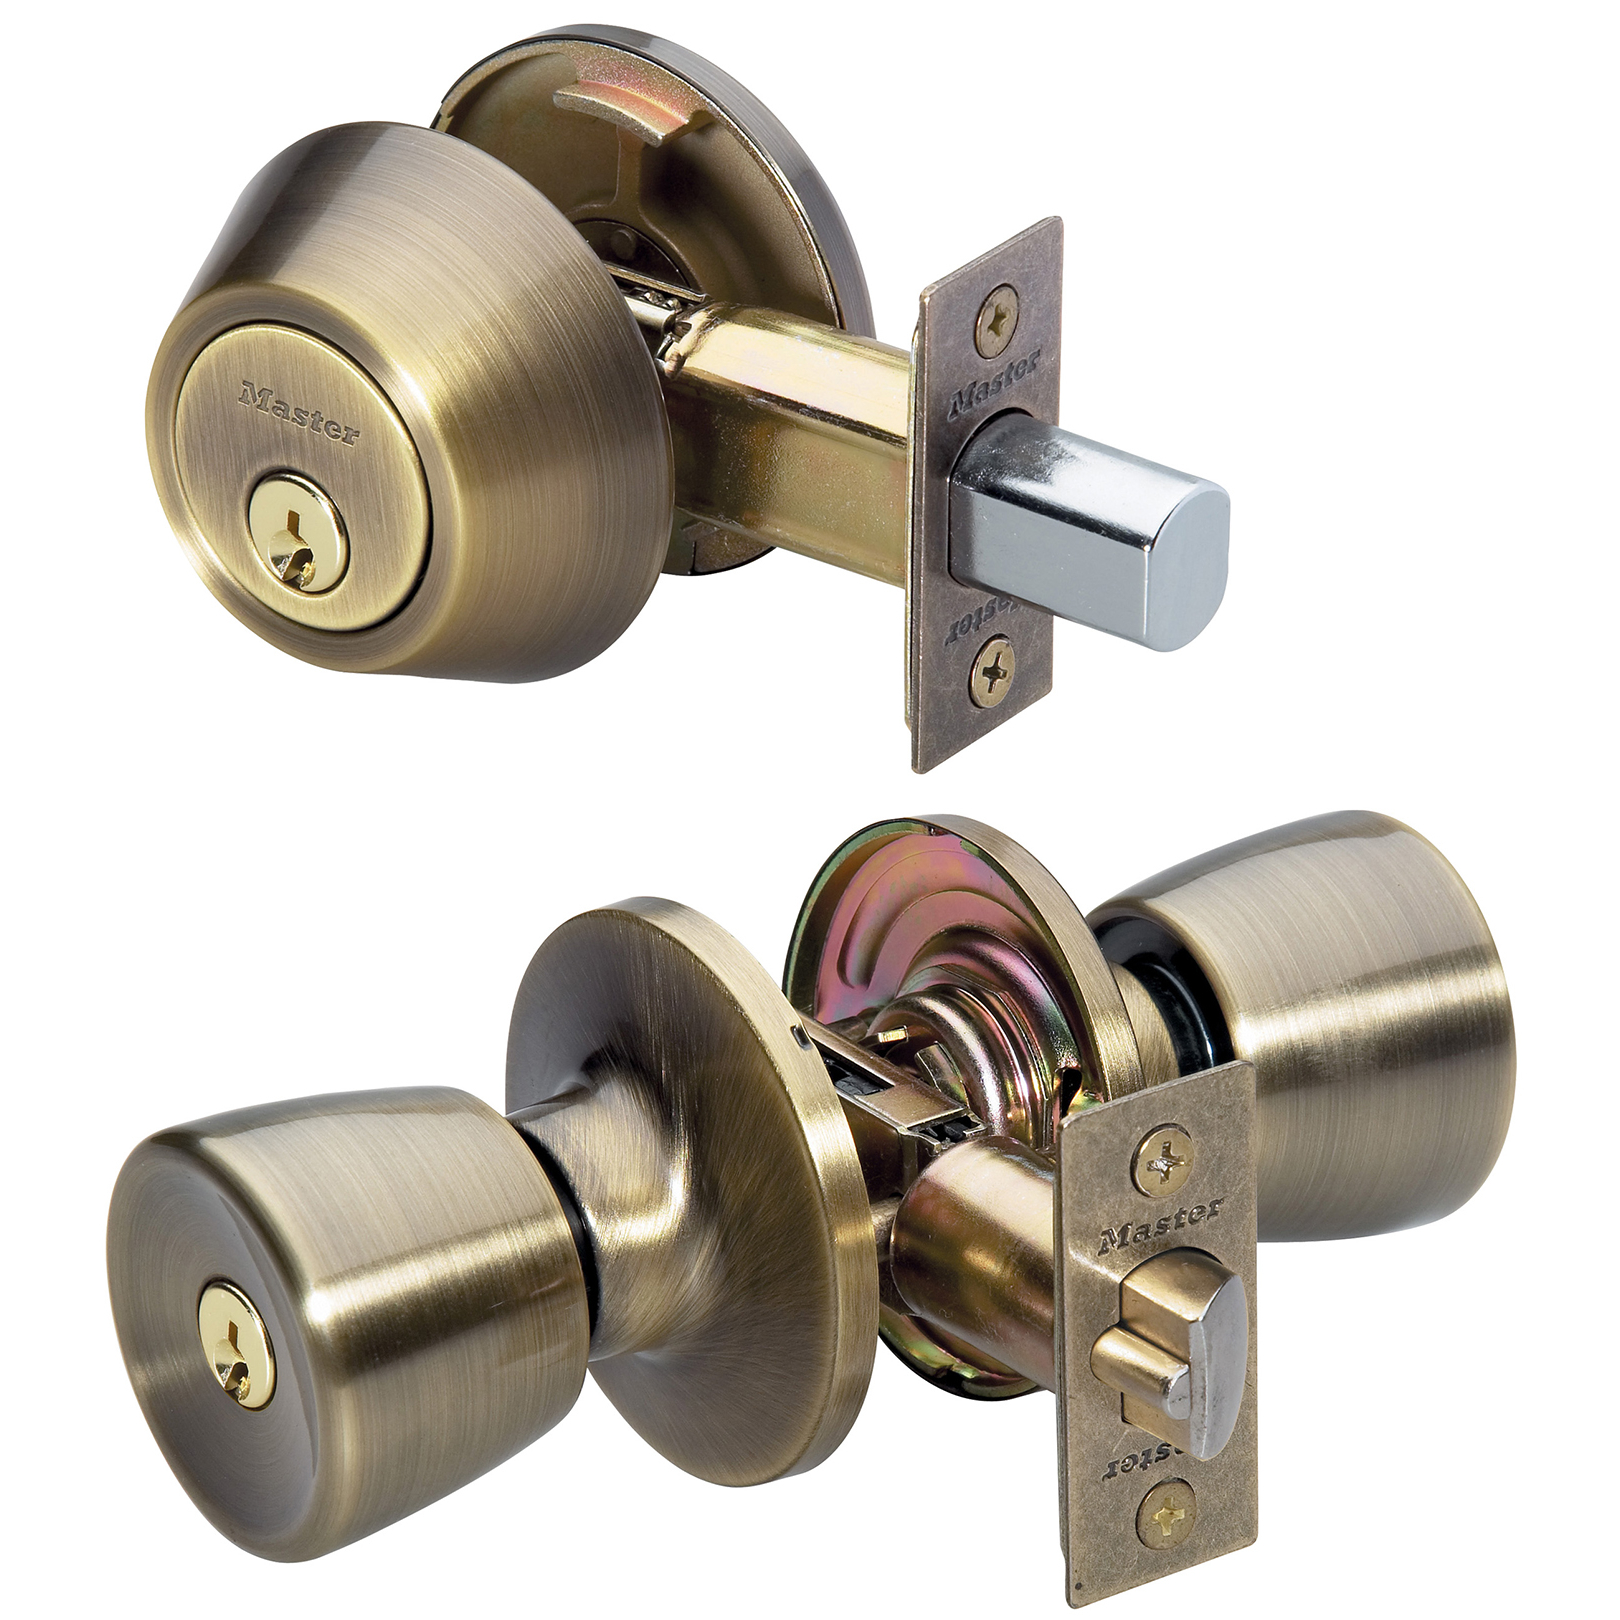 Master Lock Door Lock TUCO0605 Tulip Style Door Knob with Single Cylinder Deadbolt, Combo Pack, Antique Brass